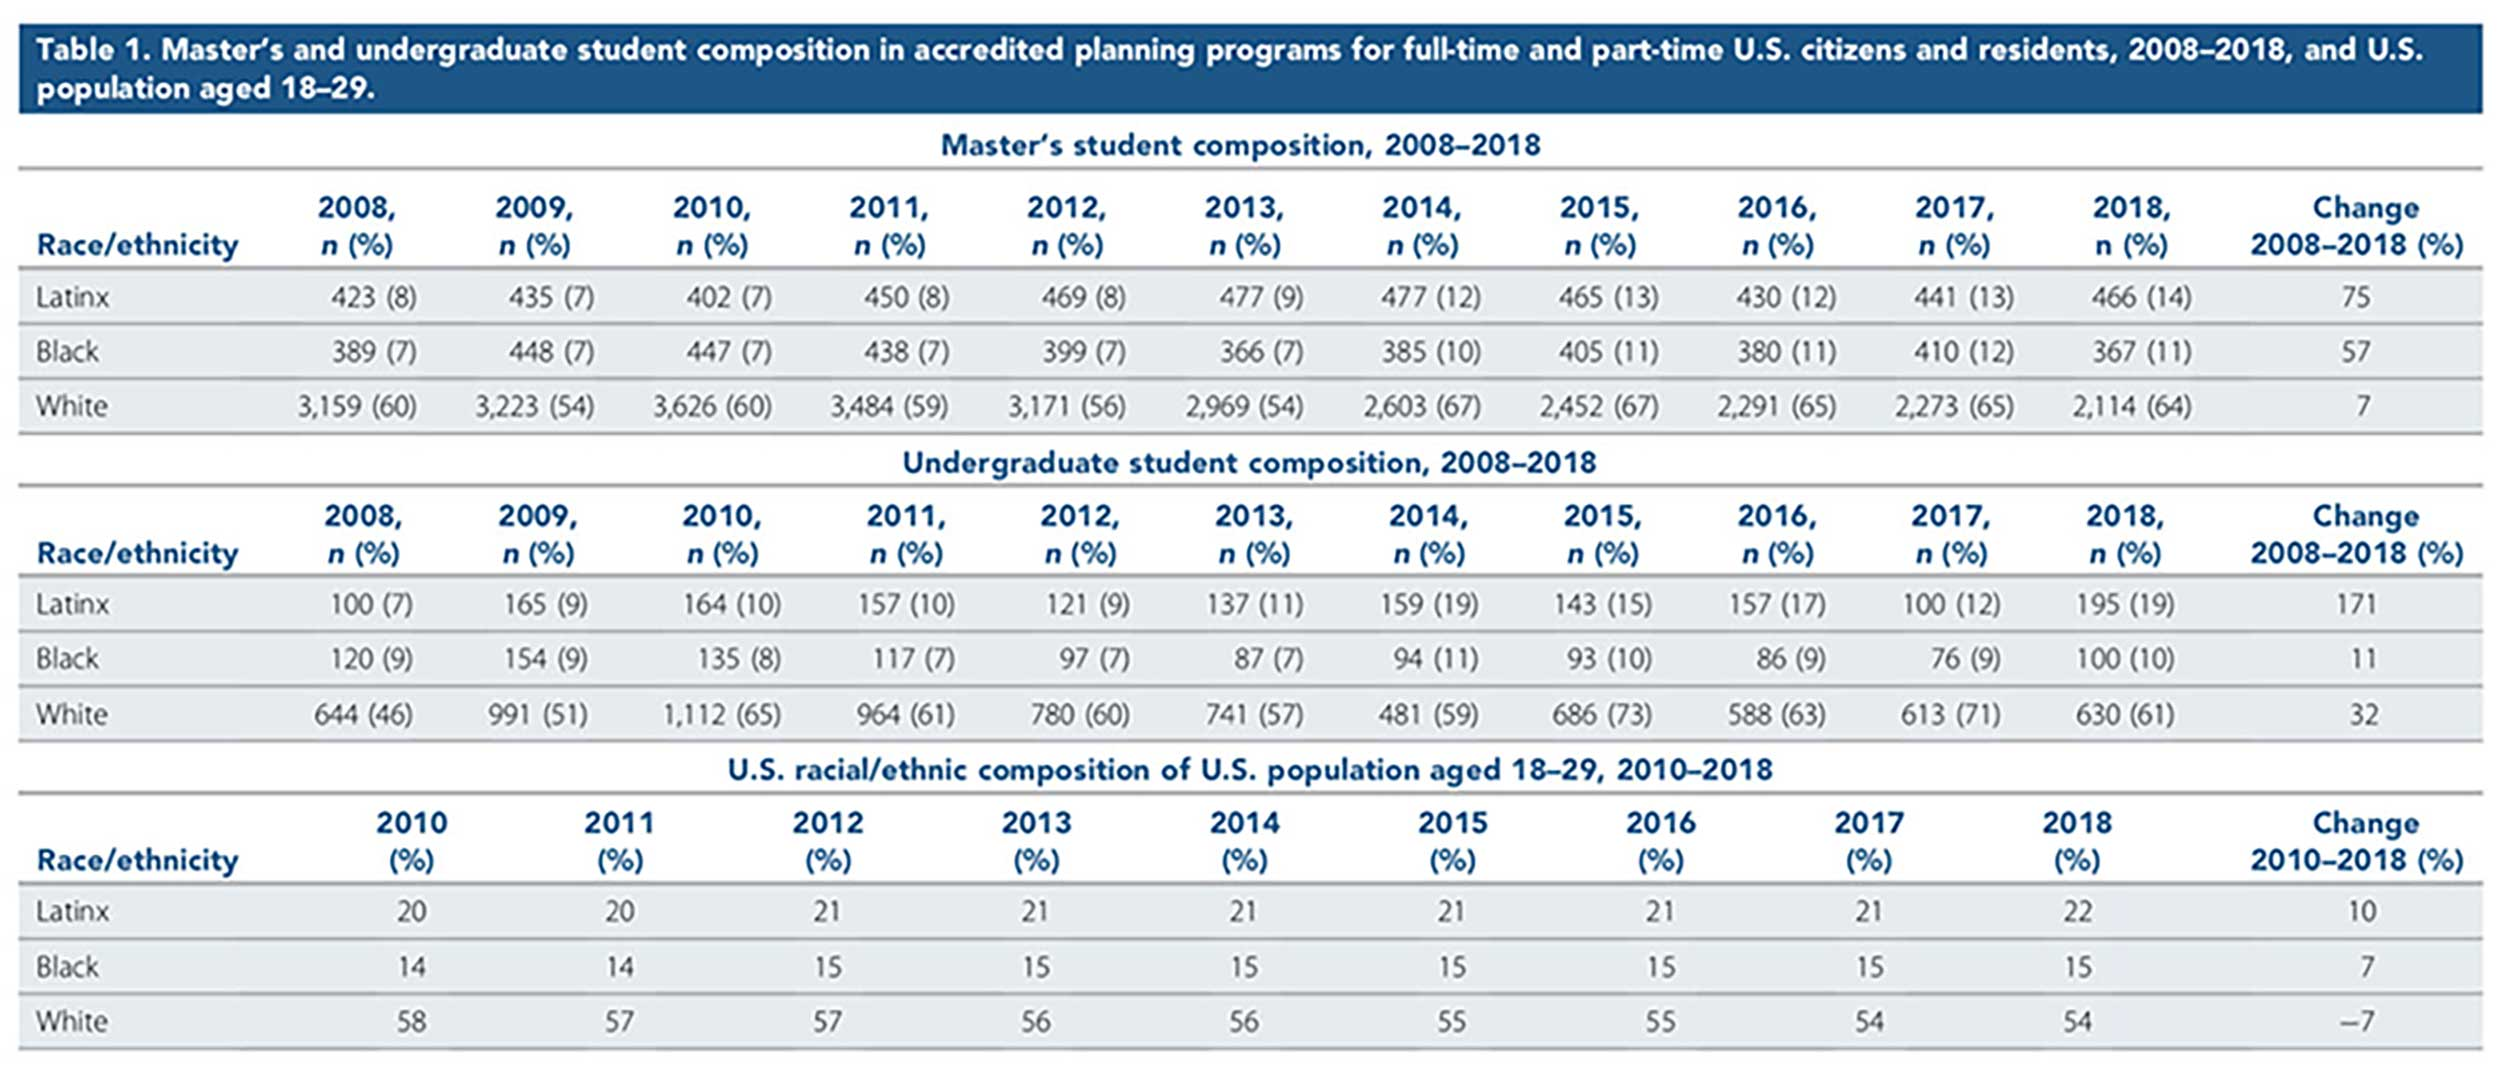 Figure 1: Student composition in accredited planning programs from PAB Annual Report data. In the Journal of the American Planning Association (Vol 87, No.1).